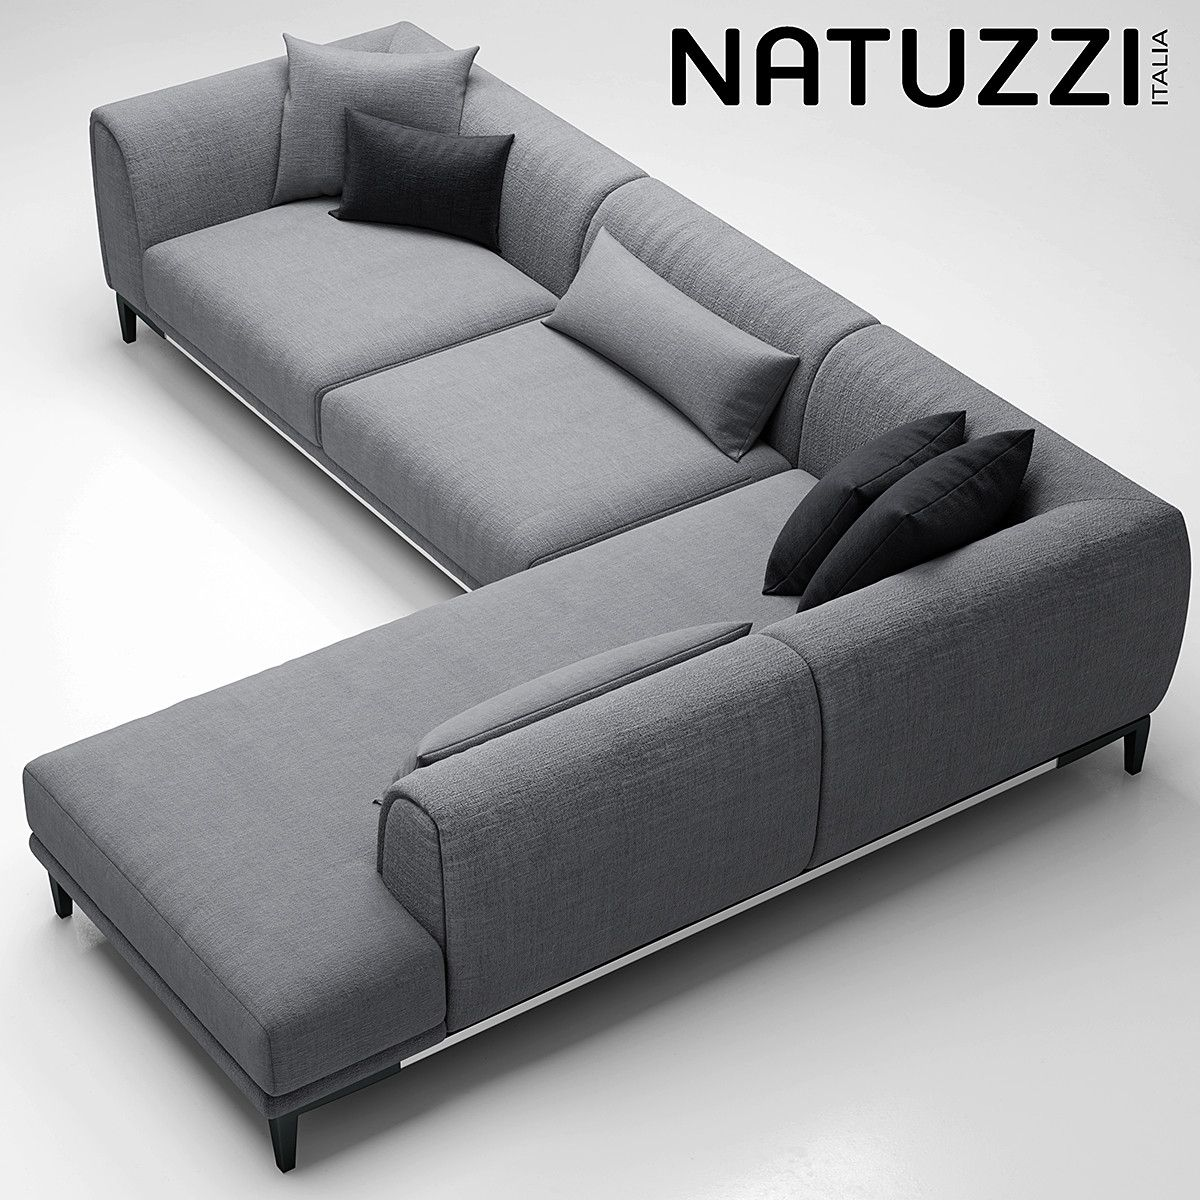 Sofa Natuzzi Trevi 3d Model Living Room Sofa Design Sofa Set Designs Corner Sofa Design